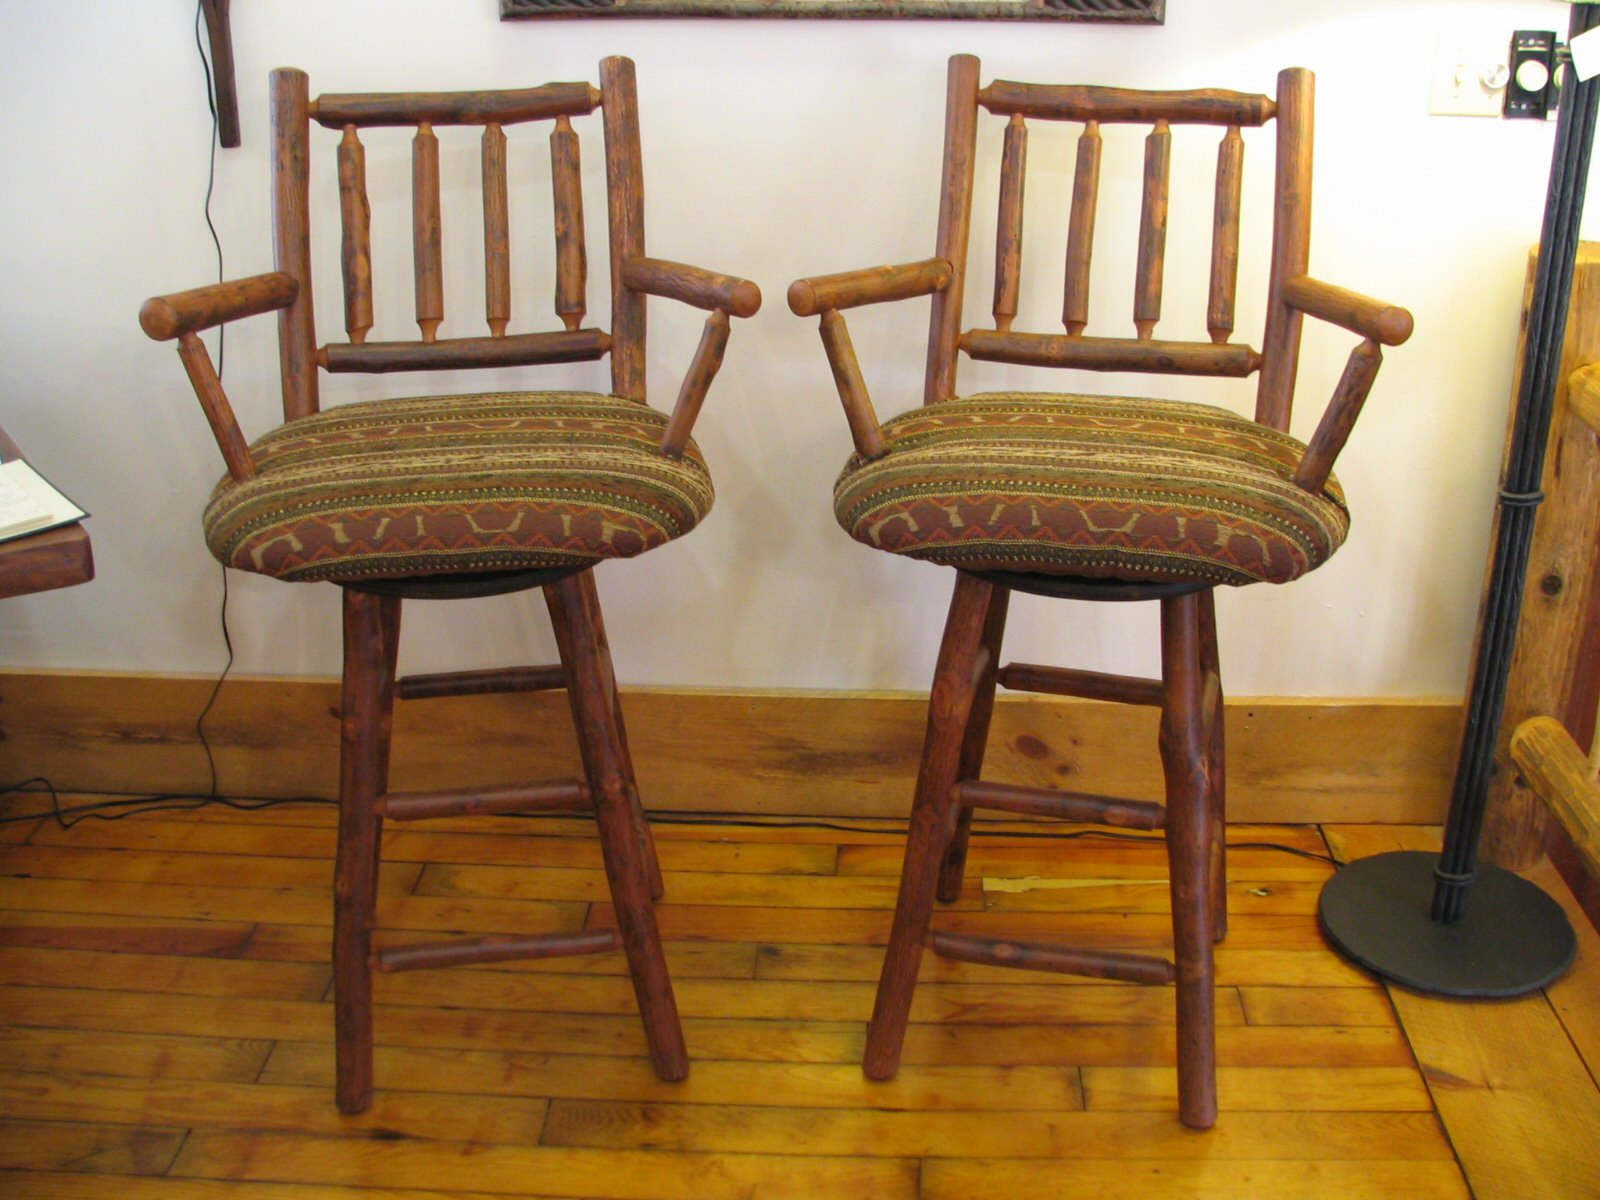 Go Rustic!: Old Hickory Upholstered Furniture